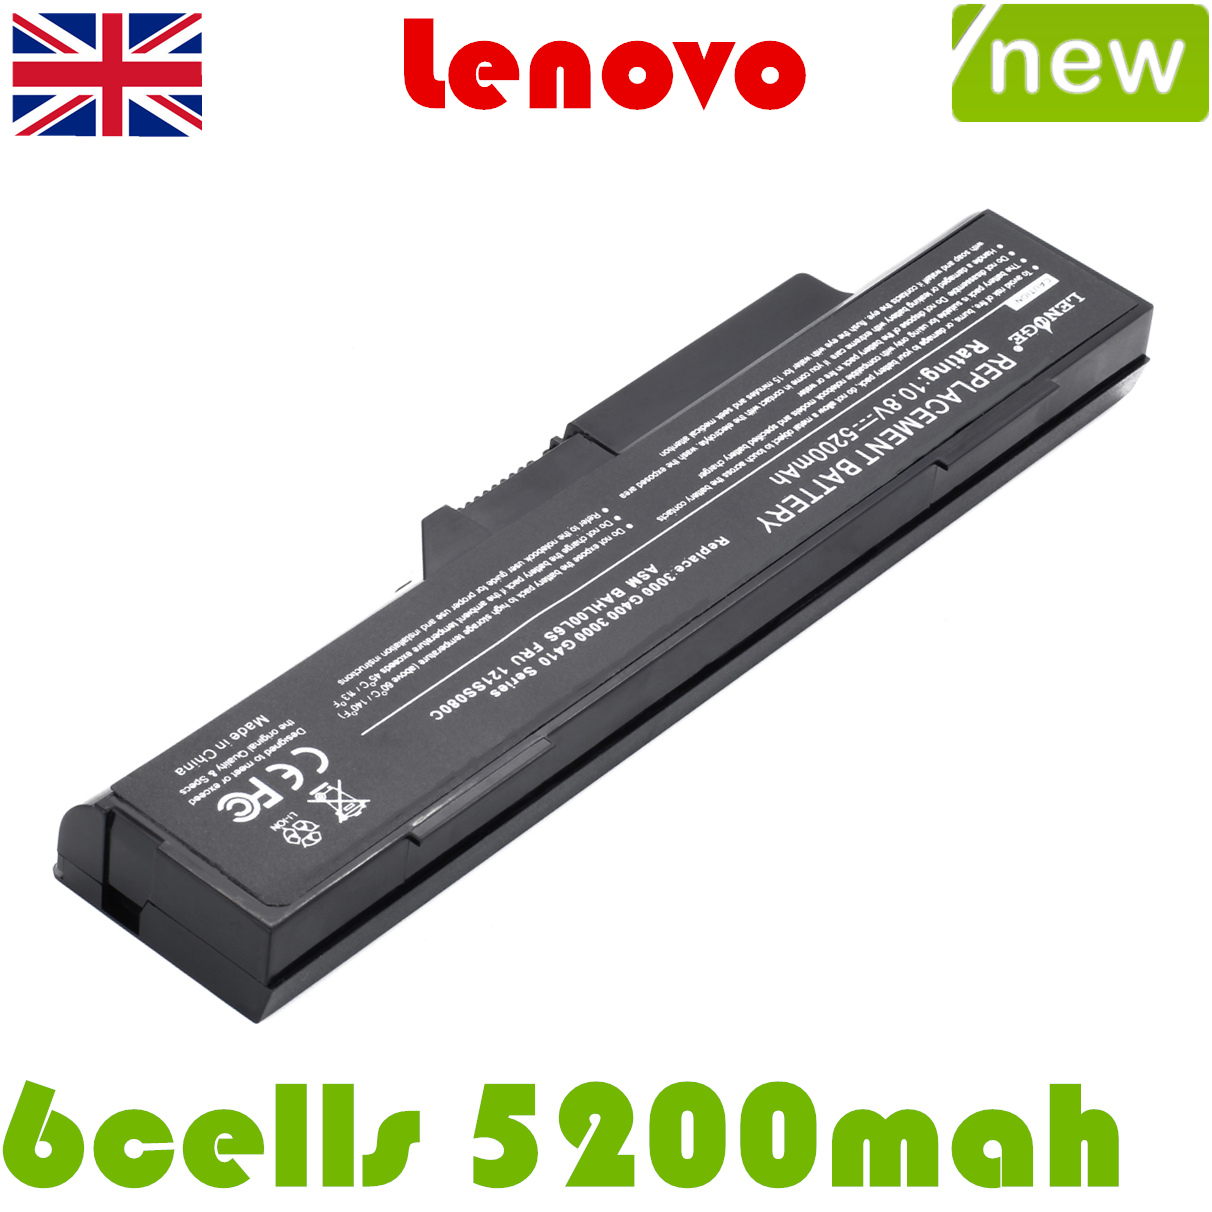 Rechargeable Battery For Lenovo 3000 G400 59011 2048 3000